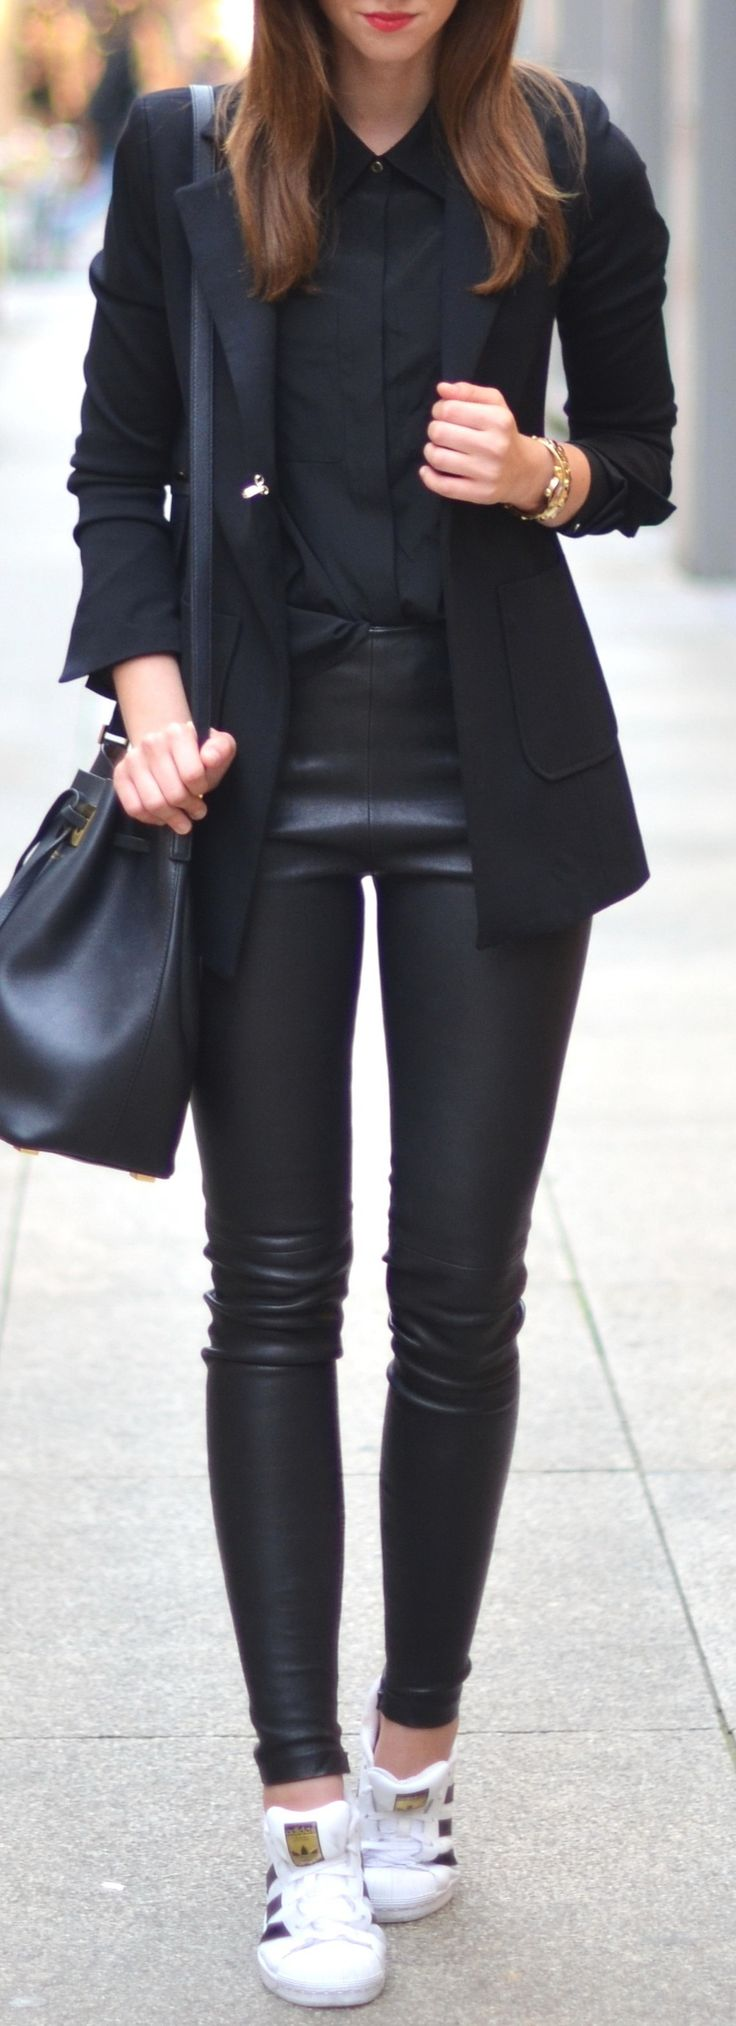 Chic and trendy, love the tailored boyfriend esq blazer with button up and high waisted leather pants!